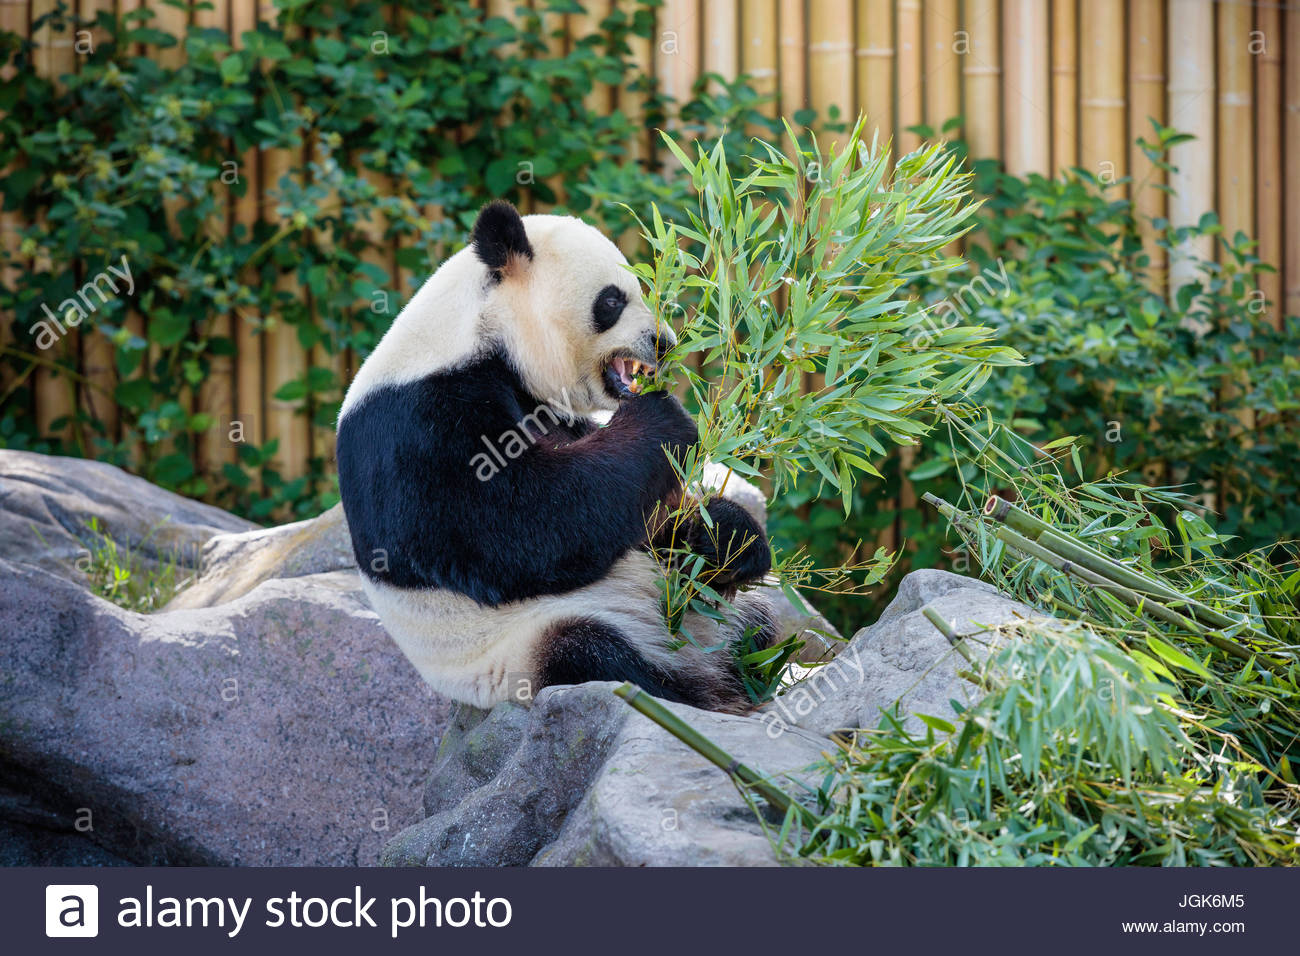 Toronto zoo park giant panda exhibit Ailuropoda melanoleuca; panda bear exhibit travel tourism attraction zoological - Stock Image